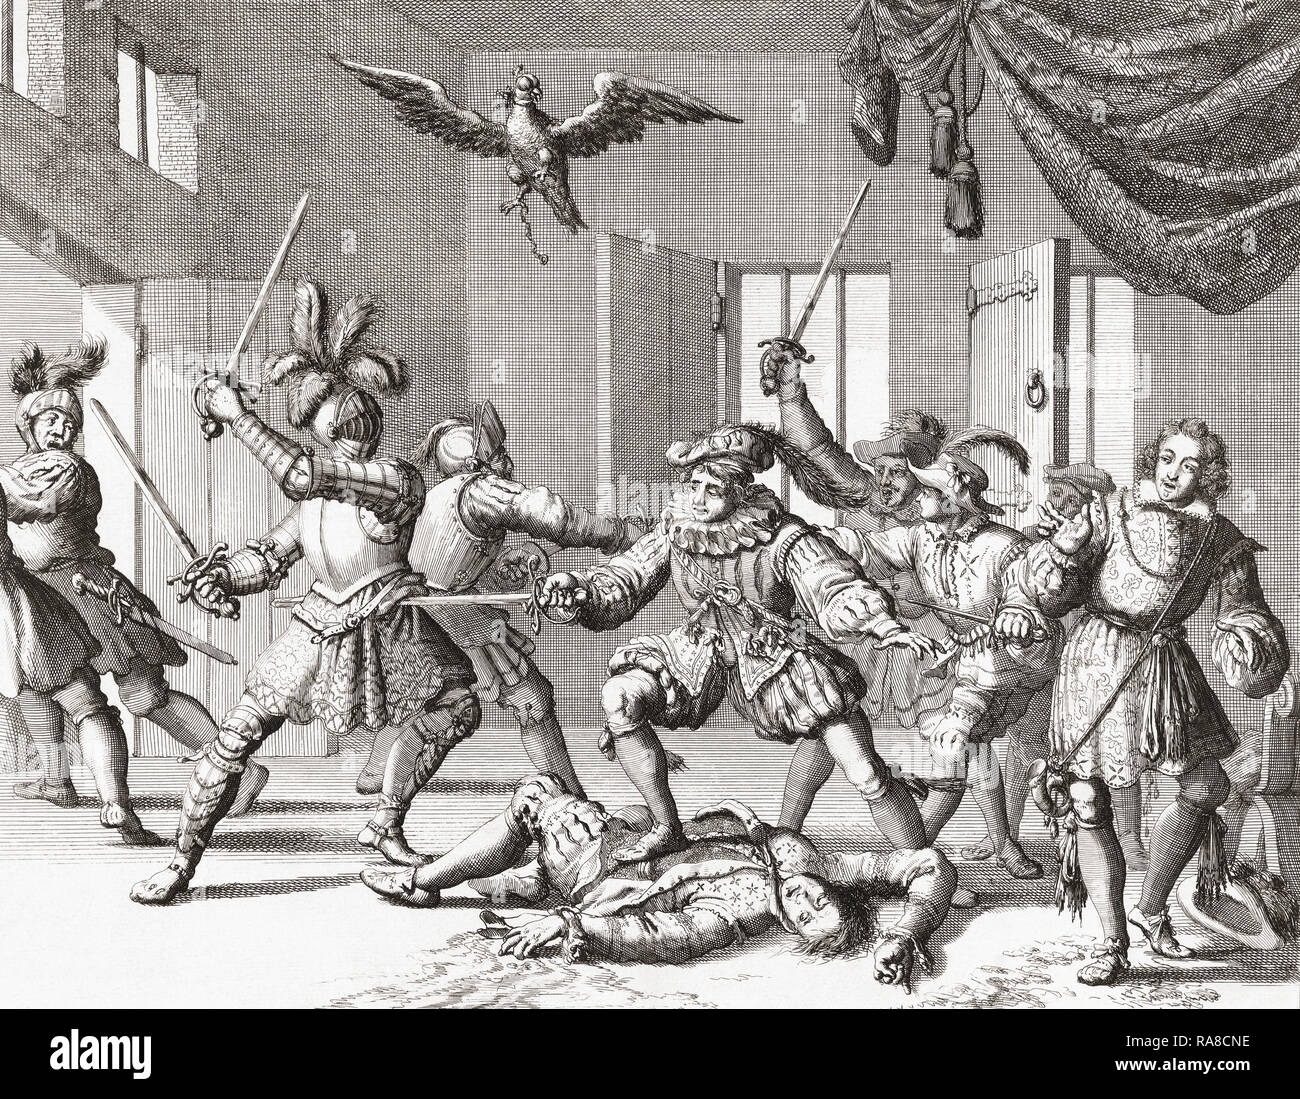 John and Alexander Ruthven, attempting to kidnap or kill James VI of Scotland, are seen here fighting for their lives against the King's attendants after being caught in the act.  They were killed.  The incident, which happened in August 1600 at Gowrie House, Perth, Scotland,  became known as the Gowrie Conspiracy.  After an engraving by Jan Luyken. - Stock Image